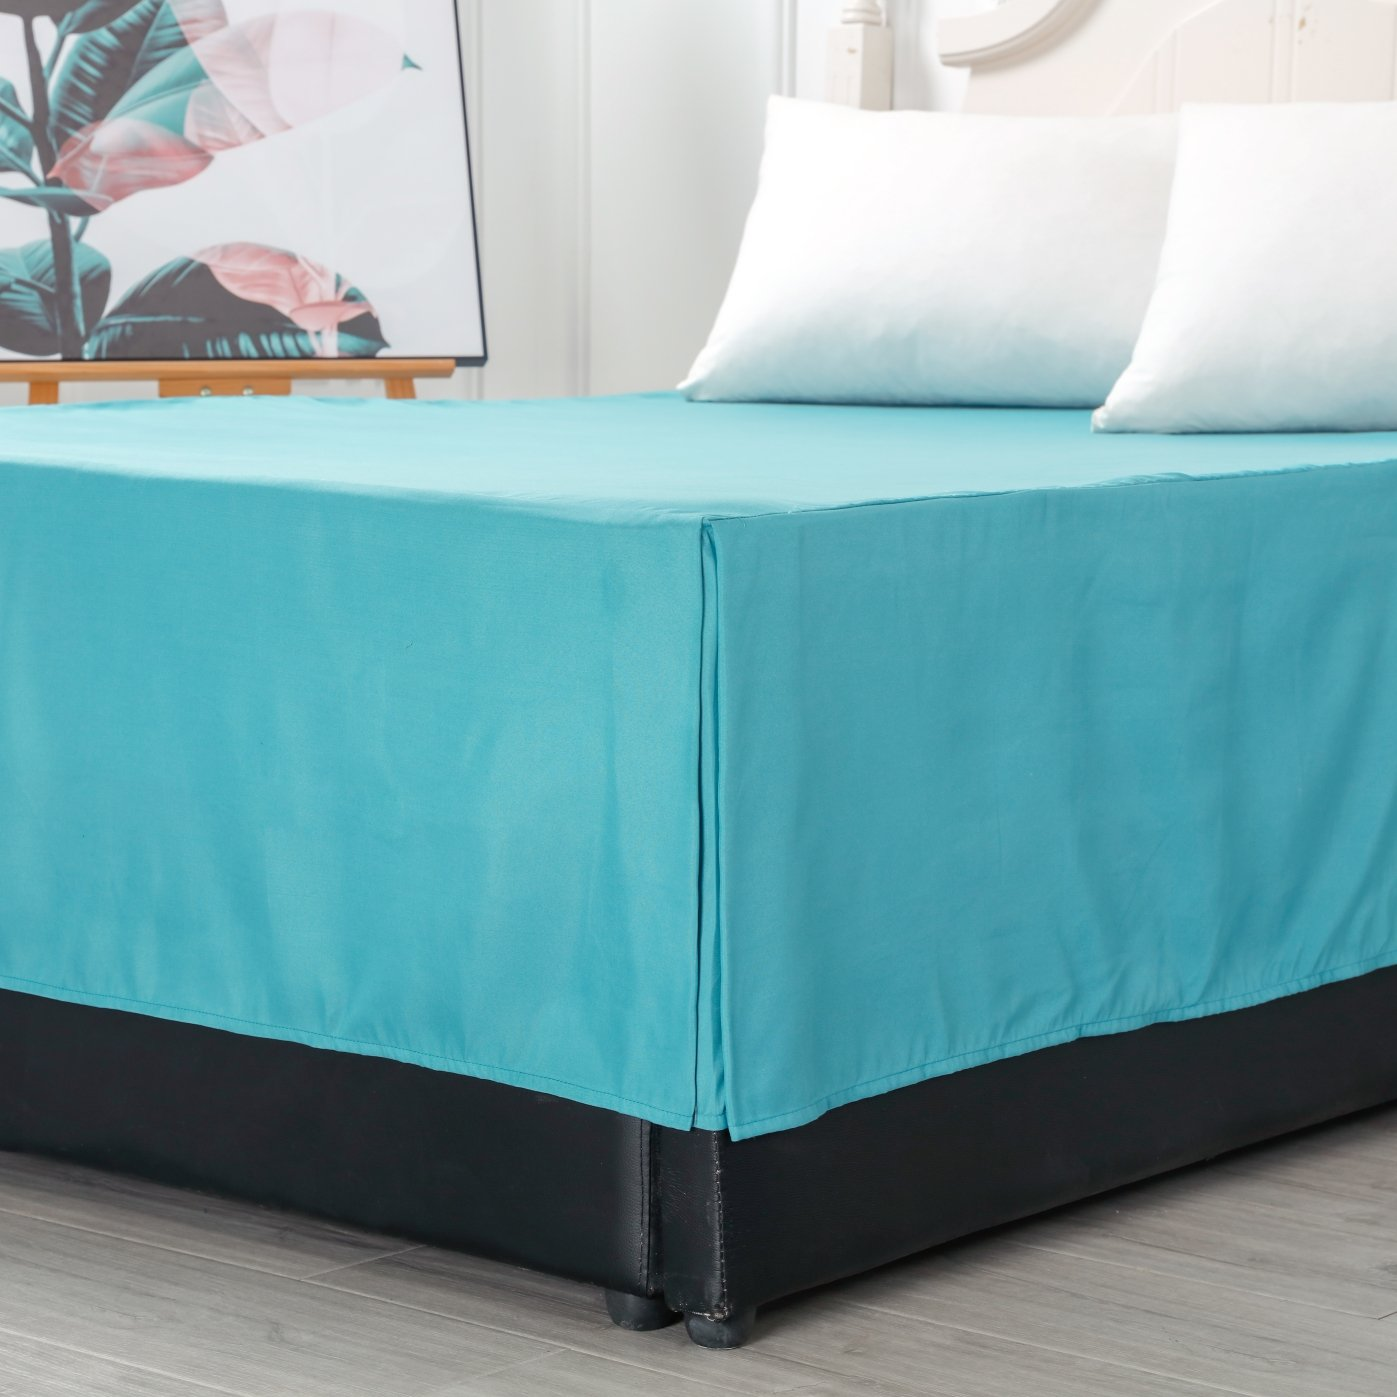 Bed Skirt Dust Ruffle Wrap Around Fade and Dust Mites Resistant with 14 inch Drop Solid Color Queen Size Teal